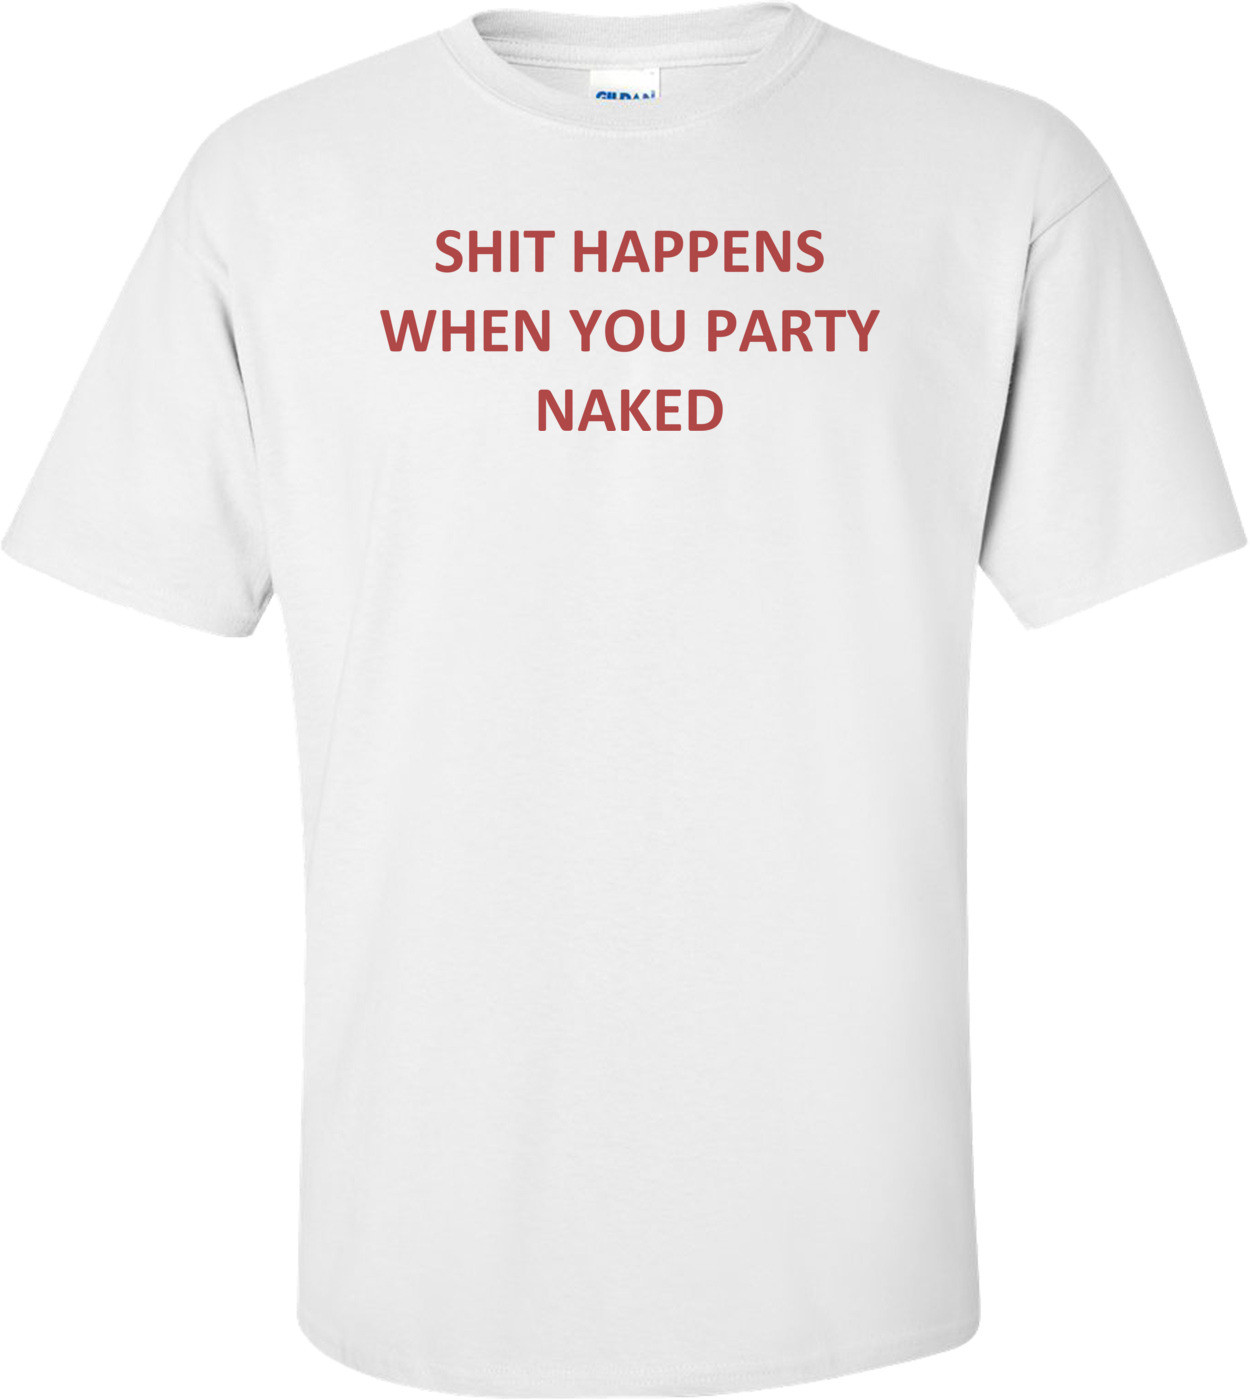 SHIT HAPPENS WHEN YOU PARTY NAKED Shirt